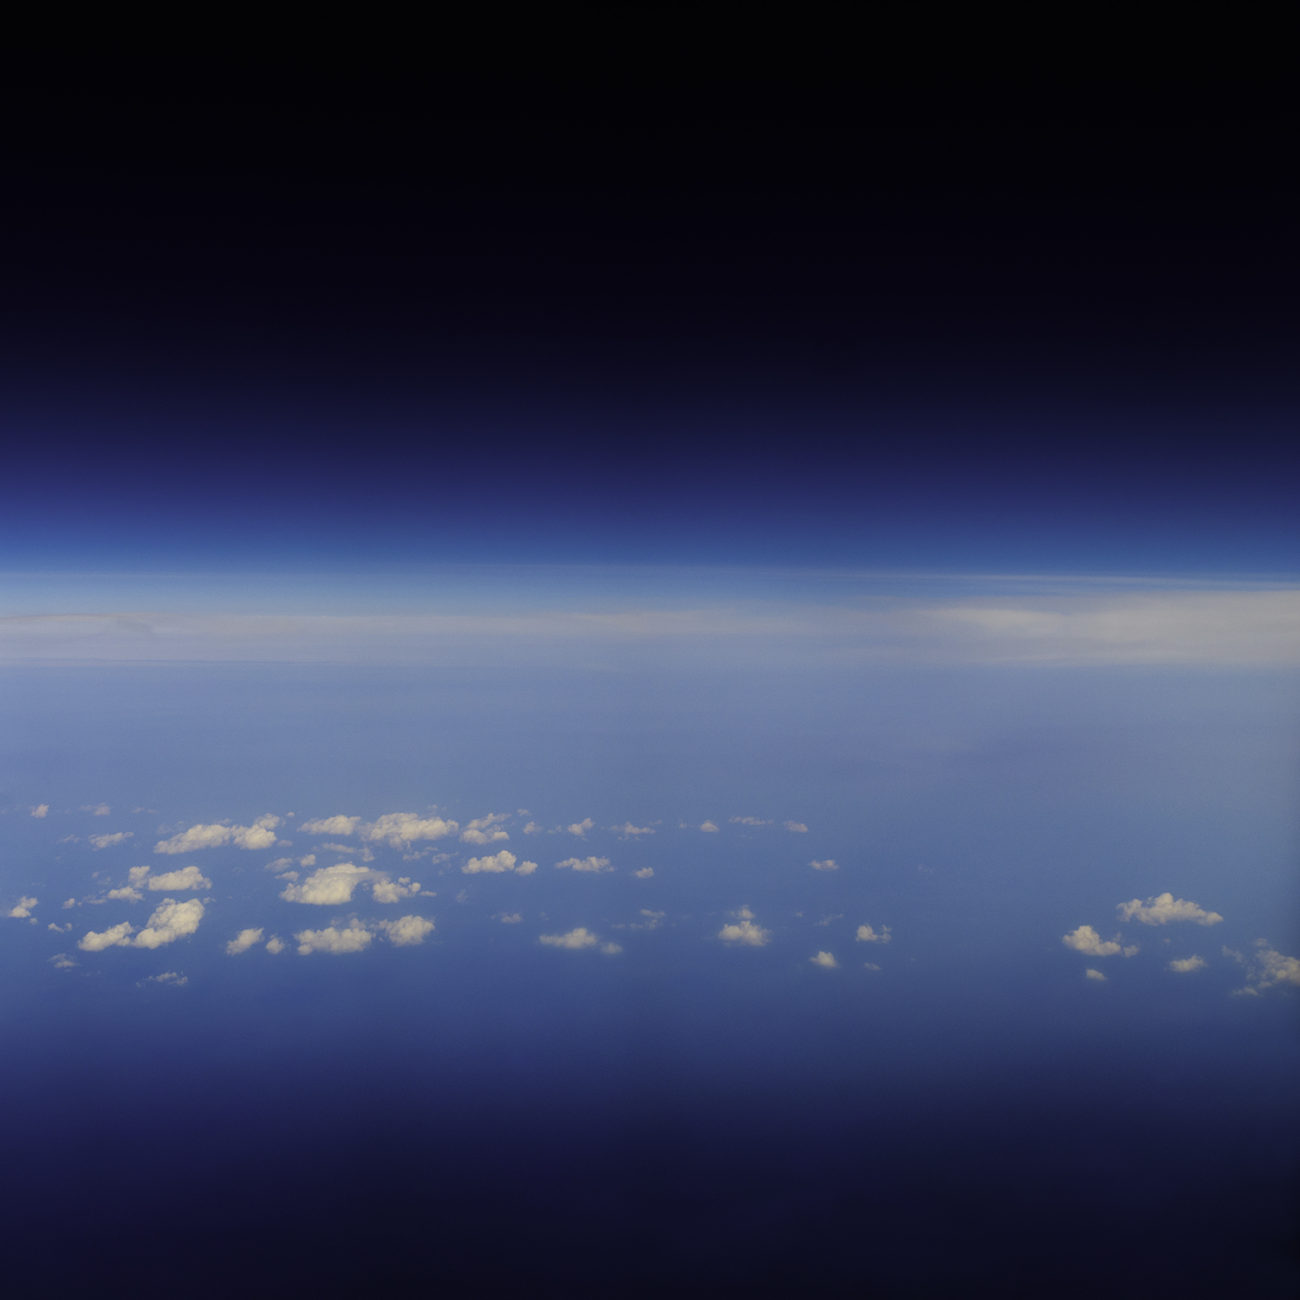 Clouds above the Atlantic, 2011